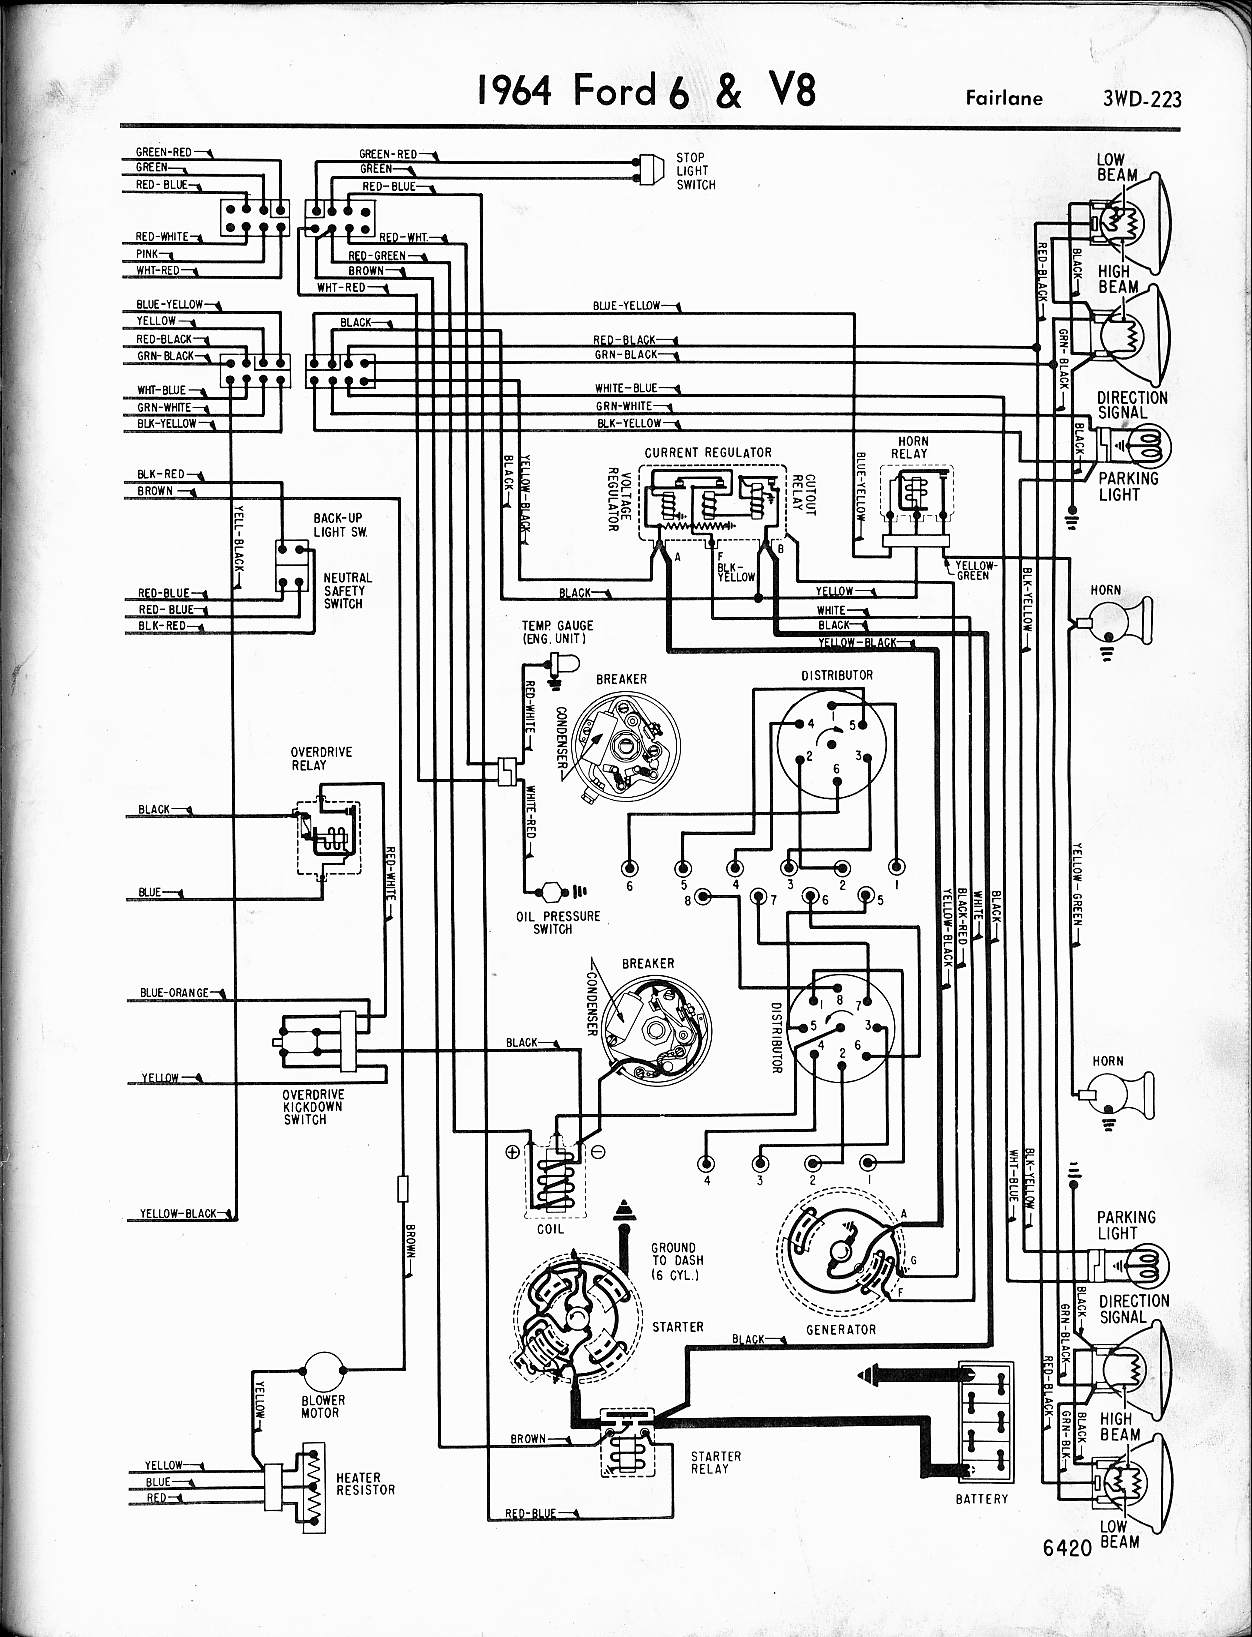 MWire5765 223 1964 1966 thunderbirfd wiring schematic 66 mustang wiring diagram 1966 ford f100 wiring harness at edmiracle.co